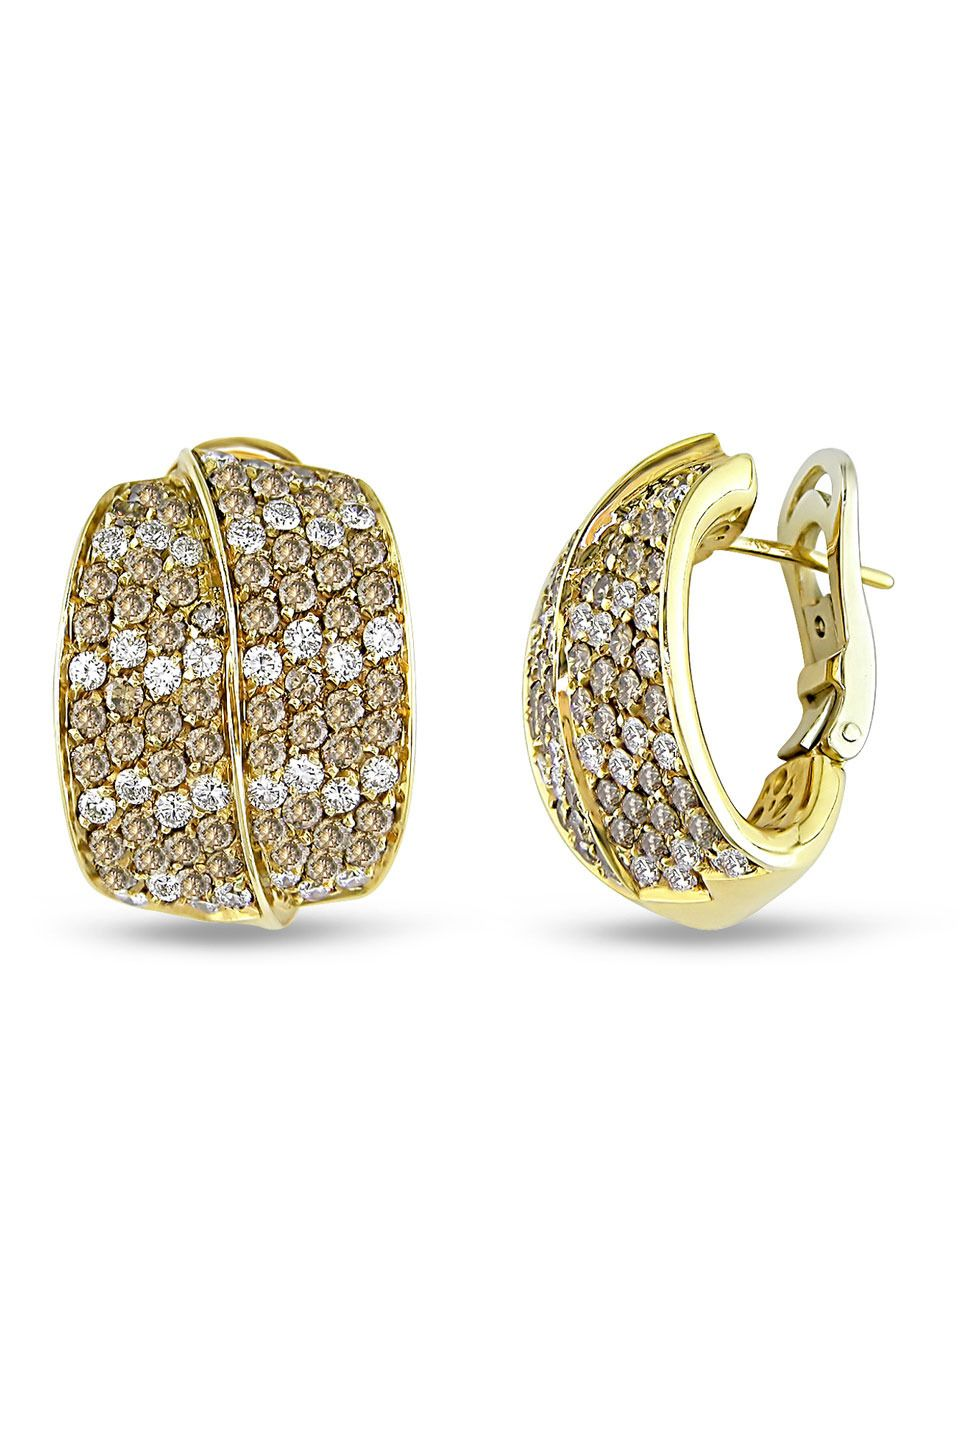 4.25 CT Brown And White Diamond Earrings In 18k Yellow Gold